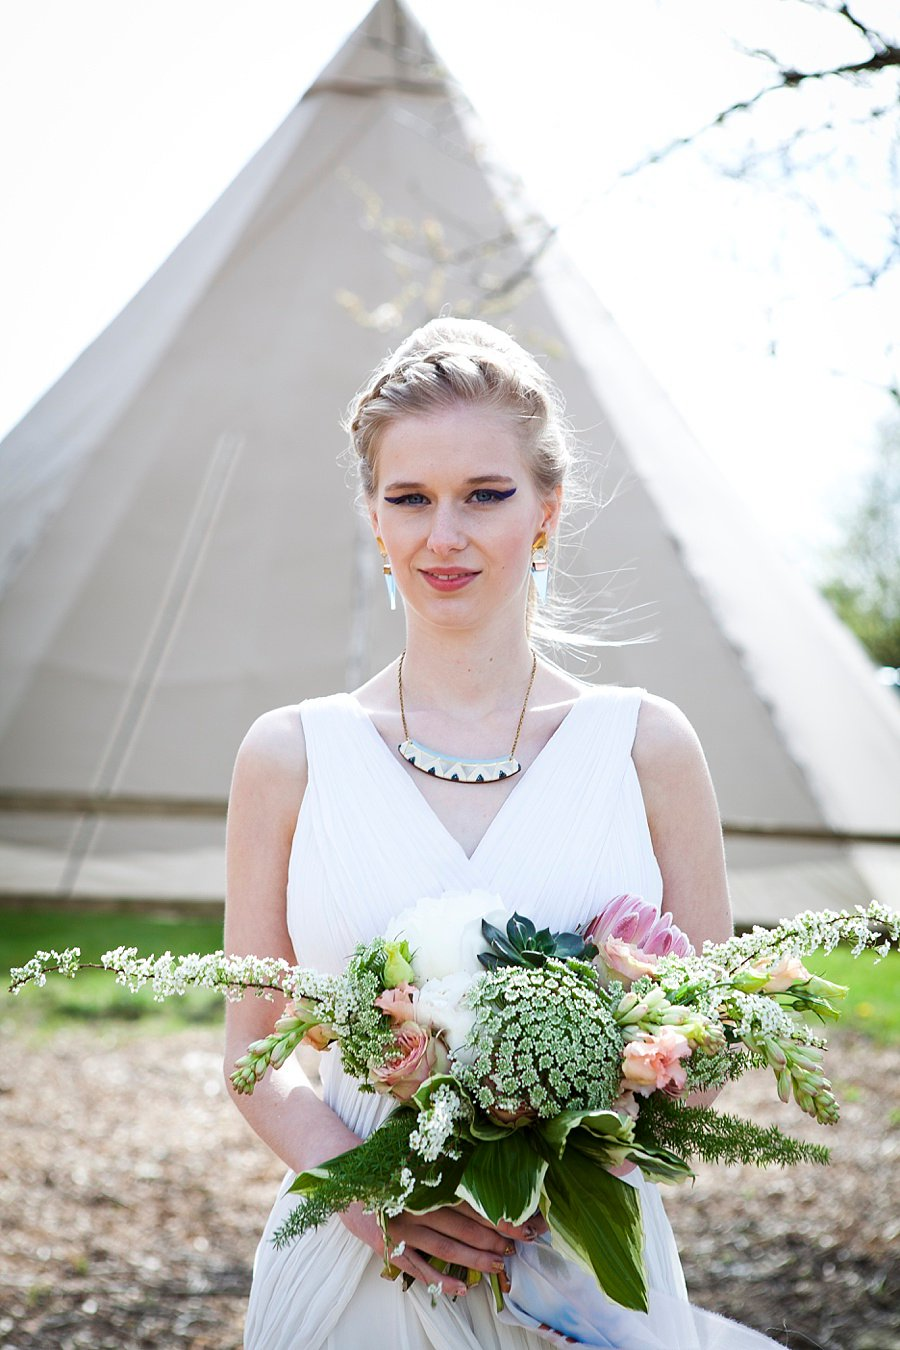 A Scandi Cool, Geometric Tipi Styled Wedding Shoot!